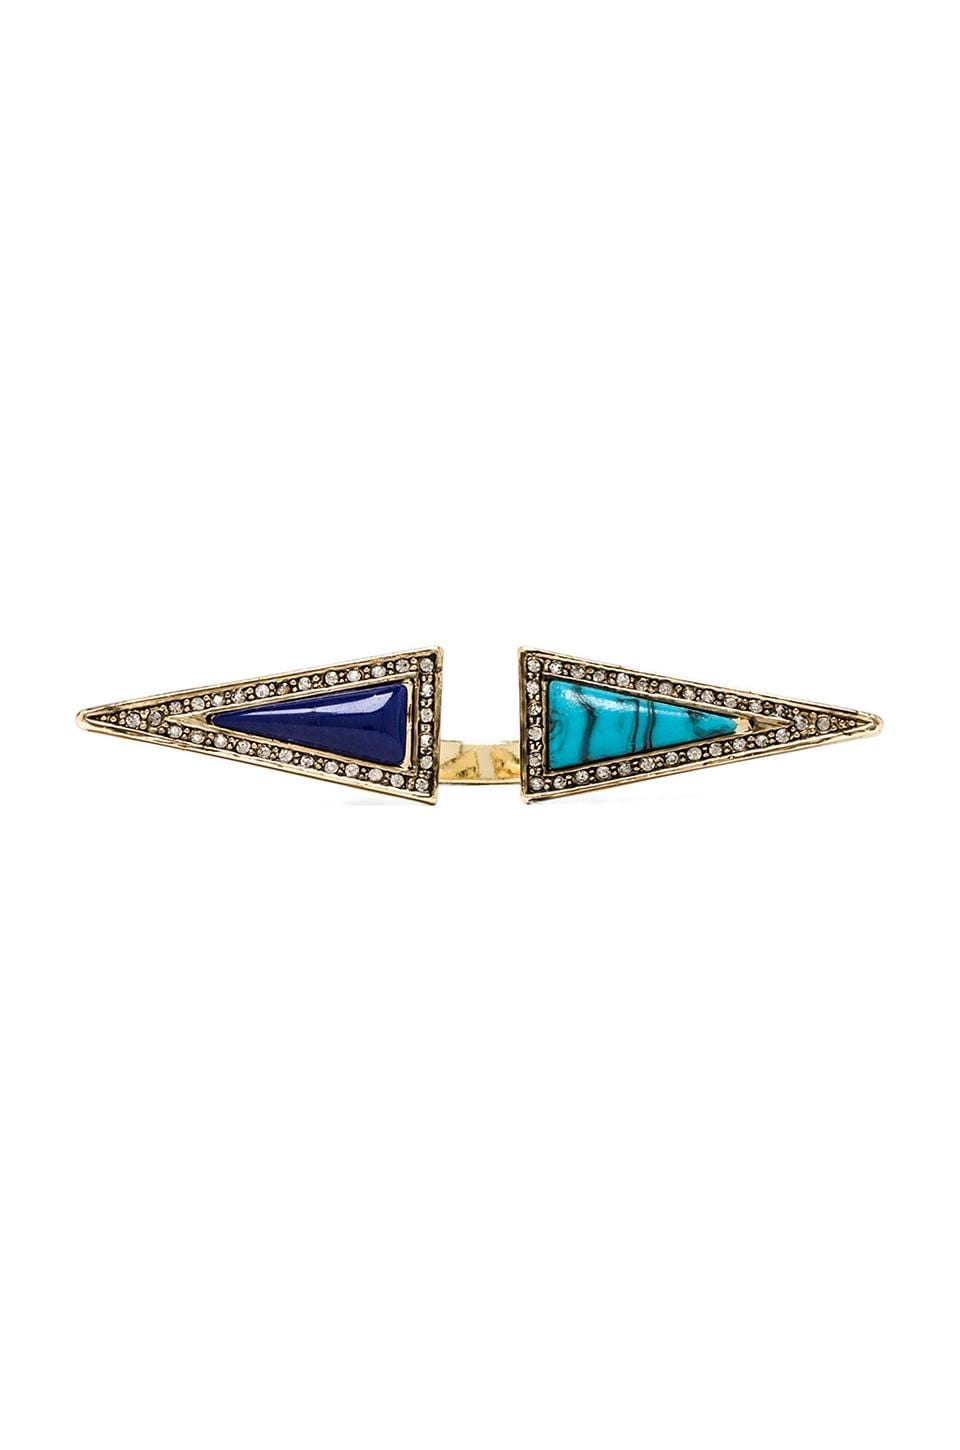 House of Harlow Isosceles Reflection Ring in Gold